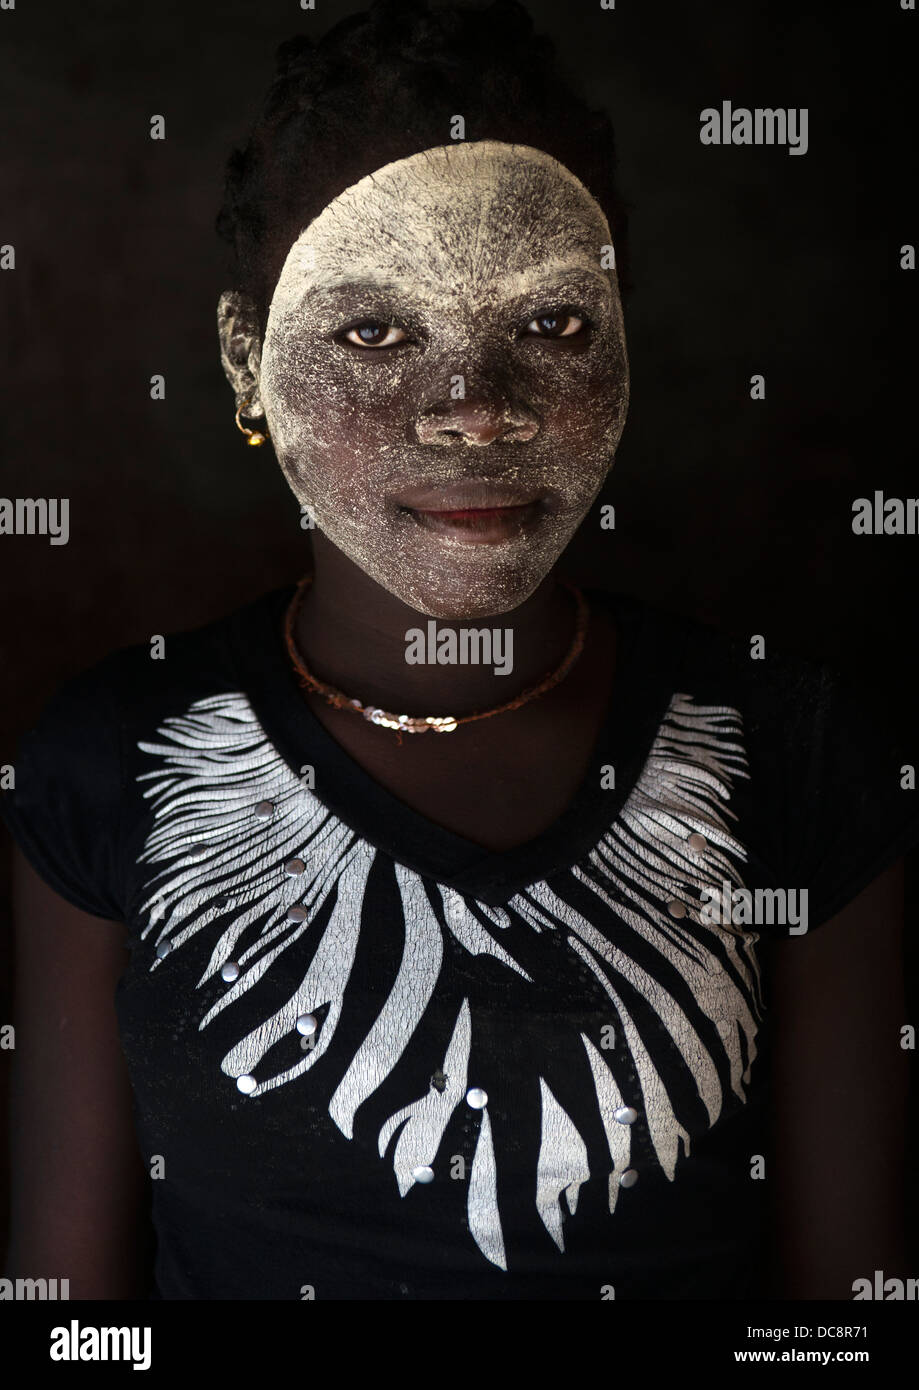 Woman With Muciro Face Mask, Ibo Island, Mozambique - Stock Image